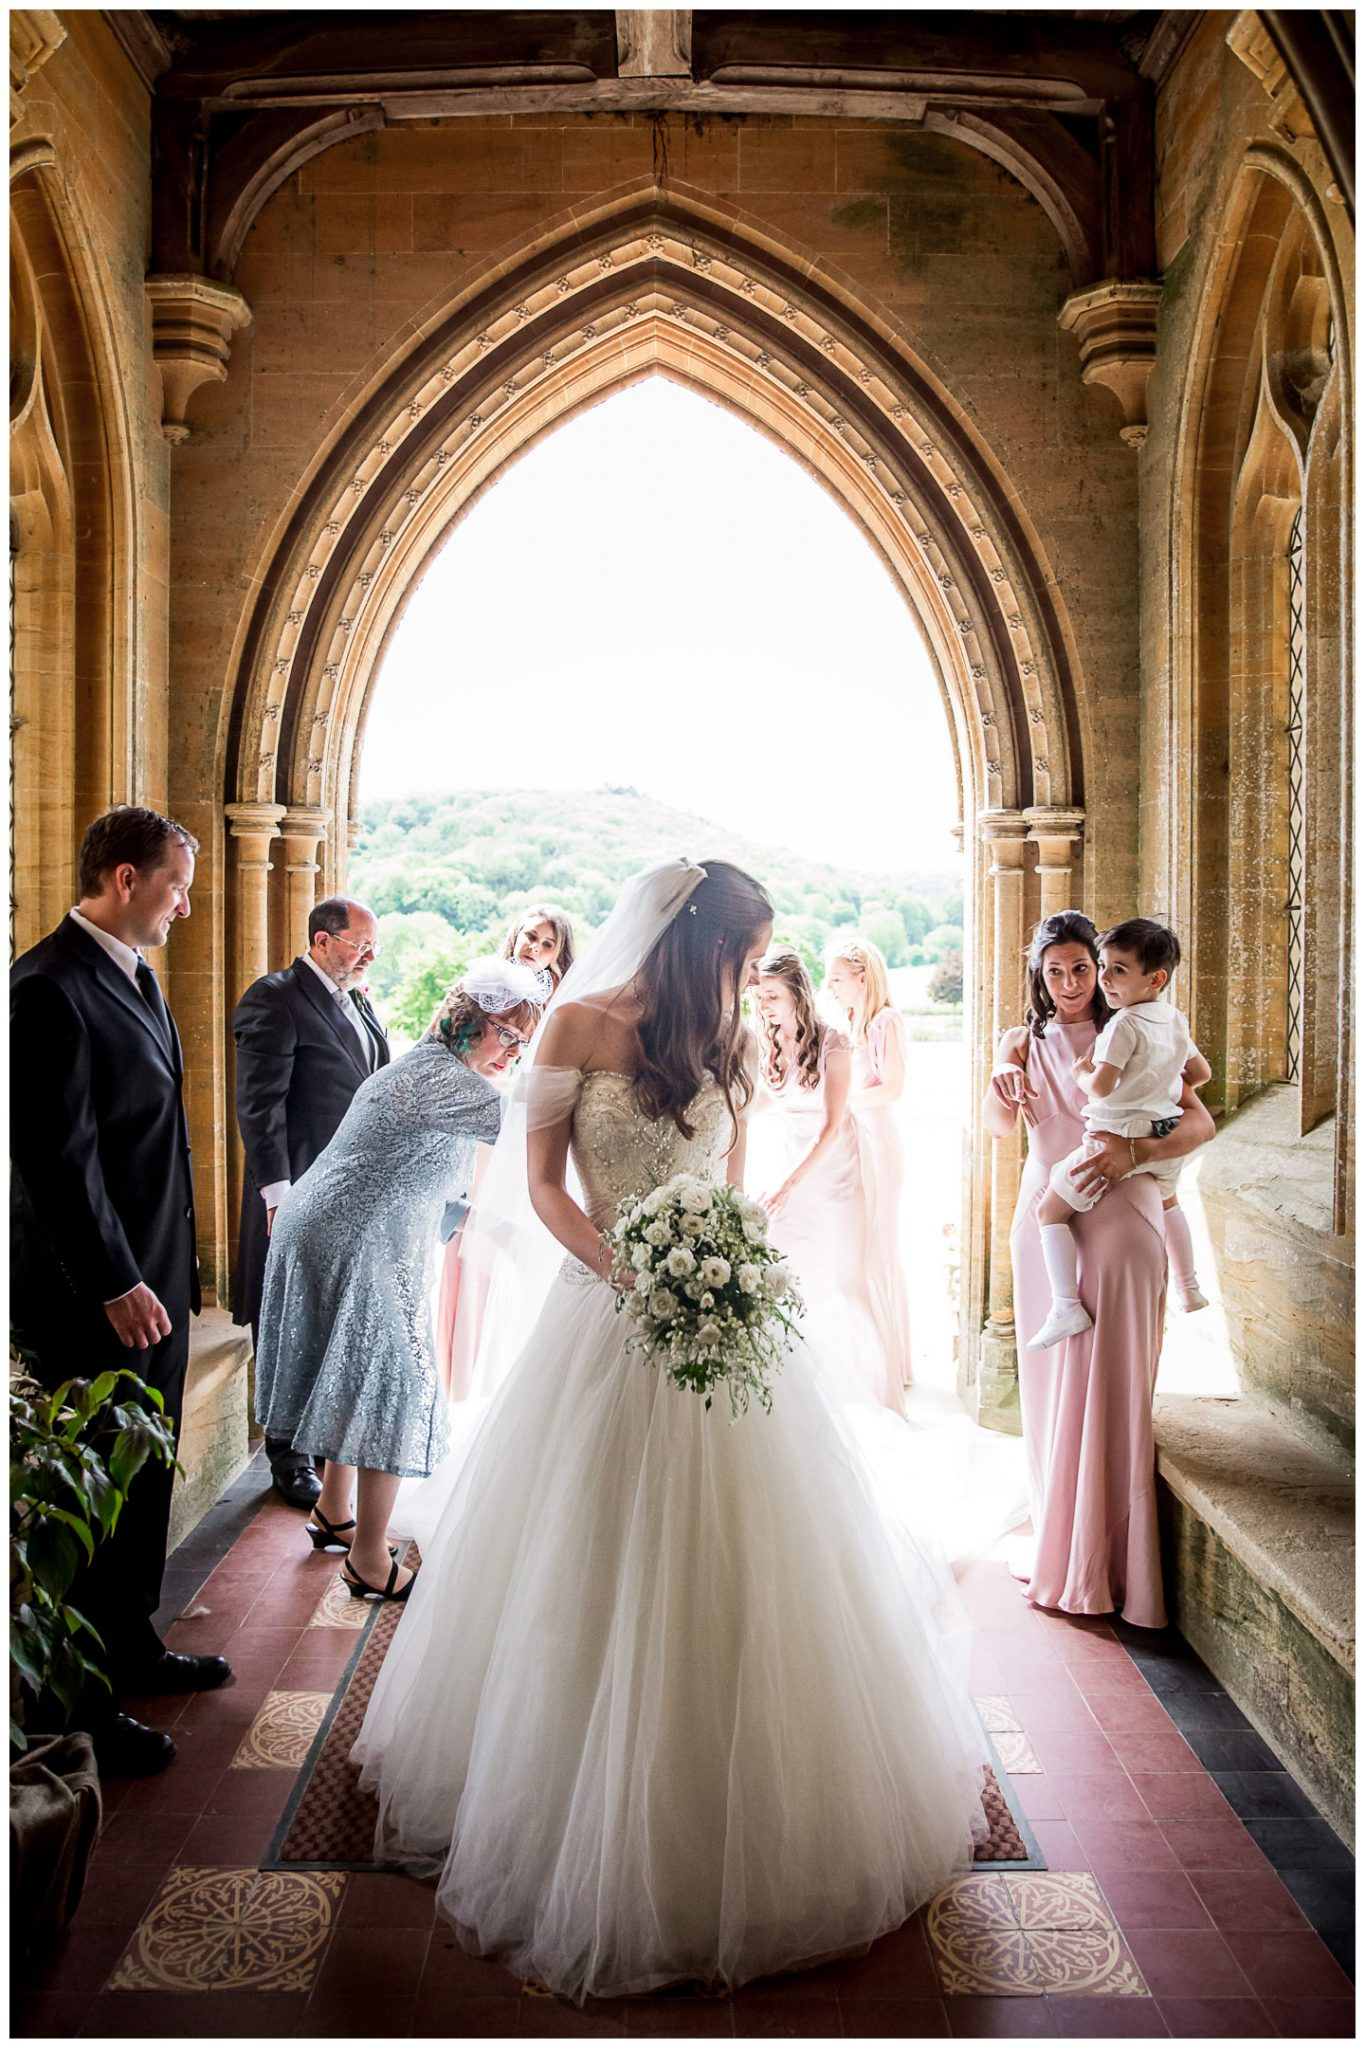 Finishing touched to the bride's dress and veil as she enters the Abbey ready fir the marriage ceremony.